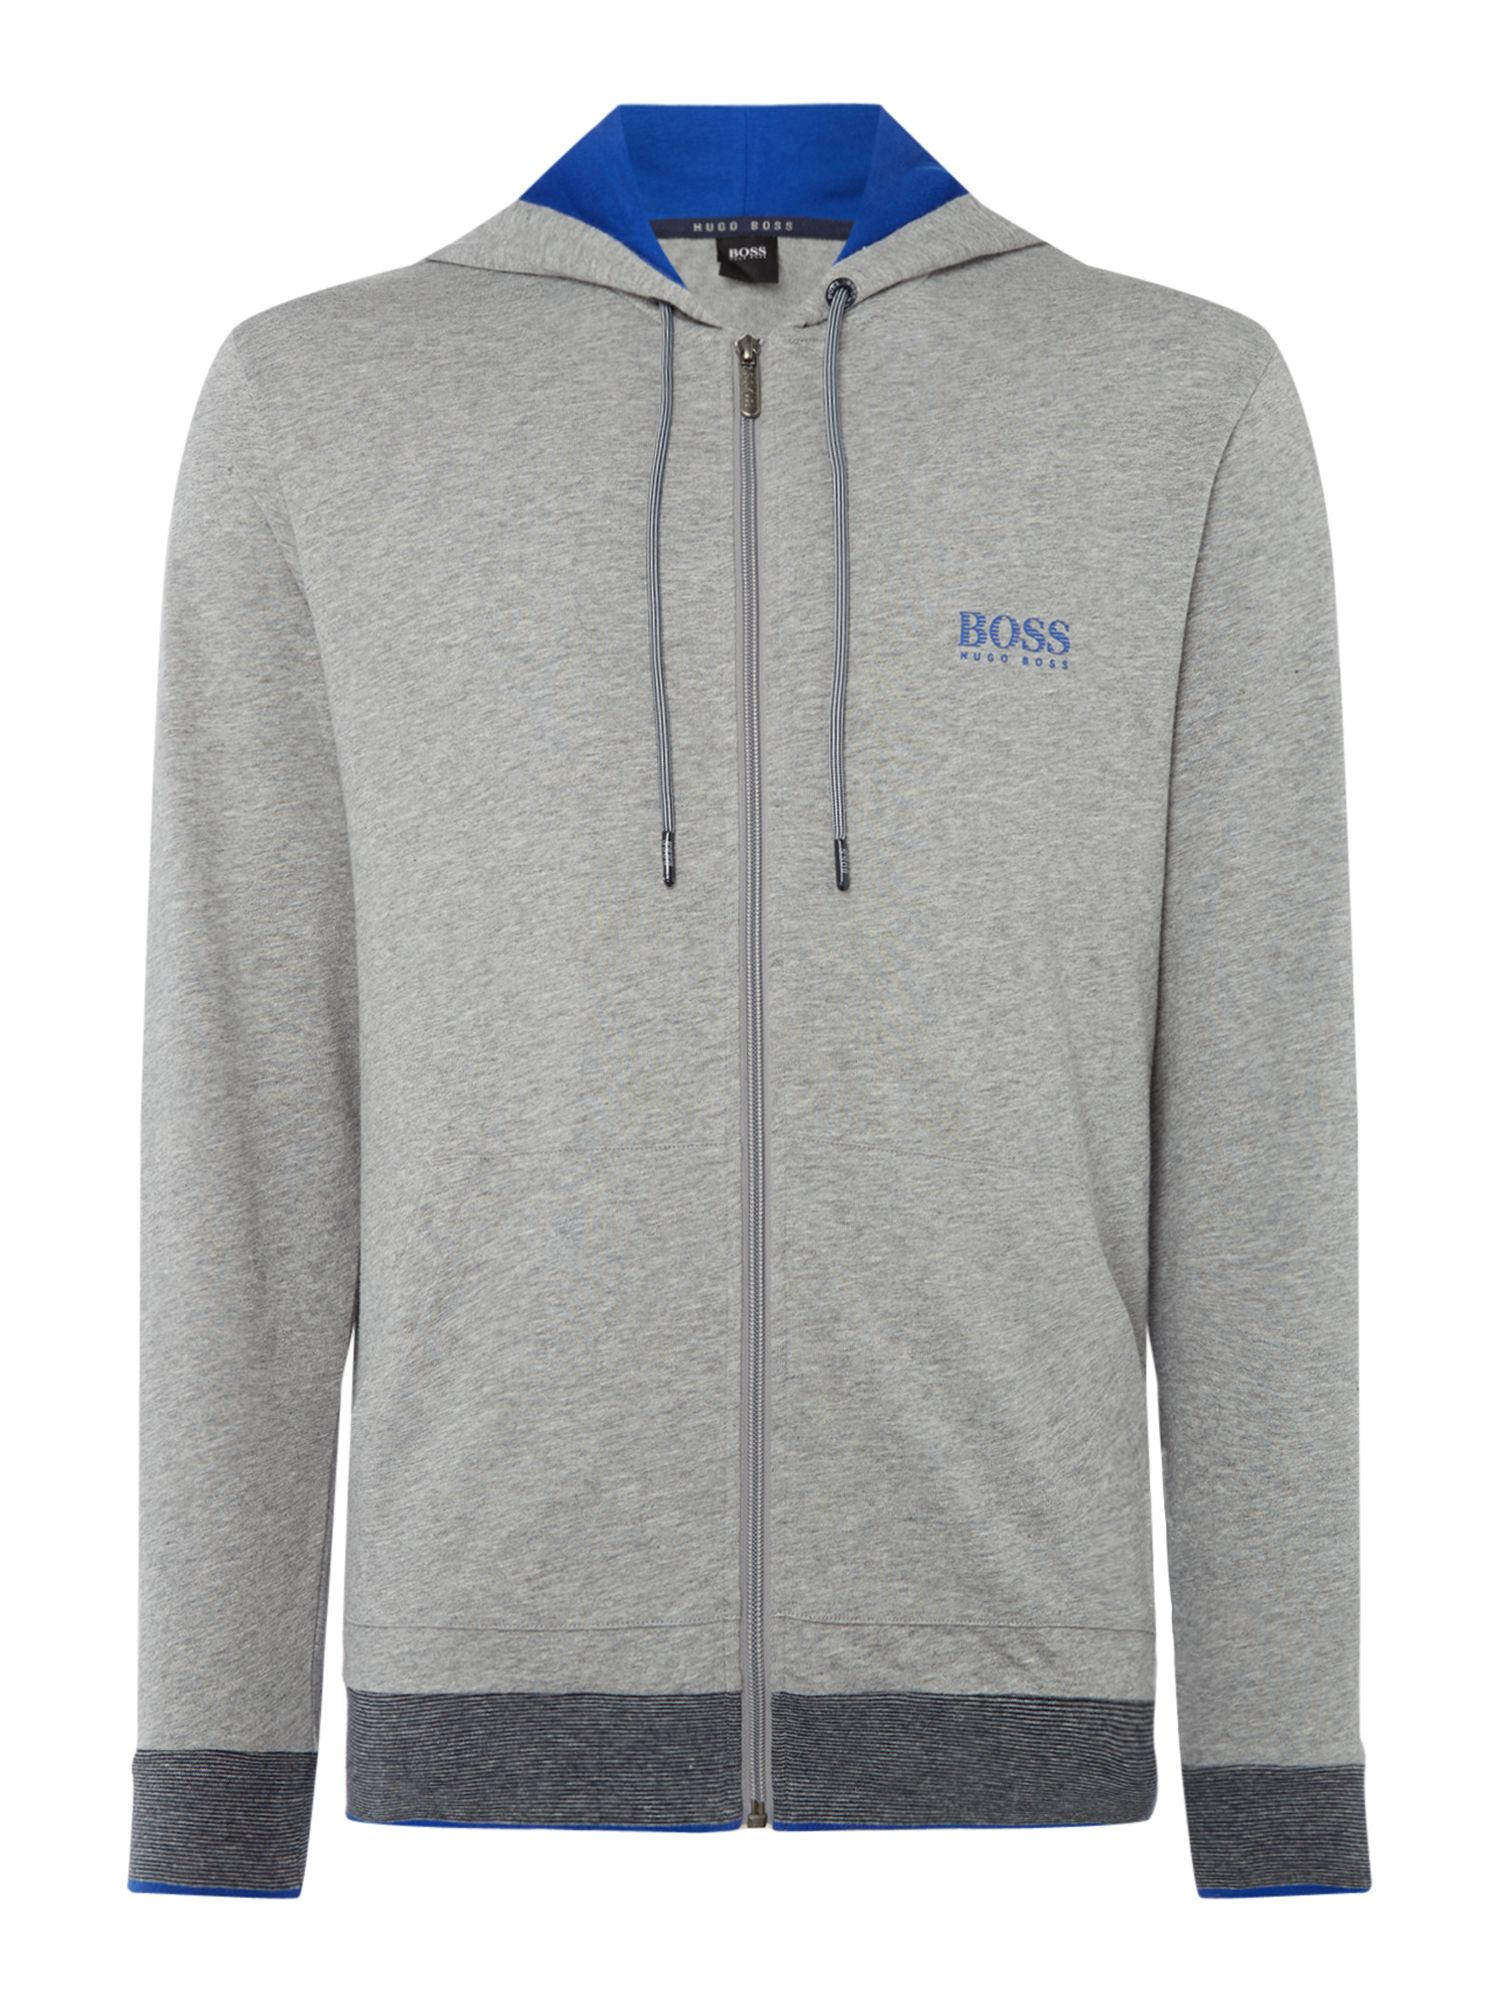 Men's Hugo Boss Authentic Hooded Jacket, Grey